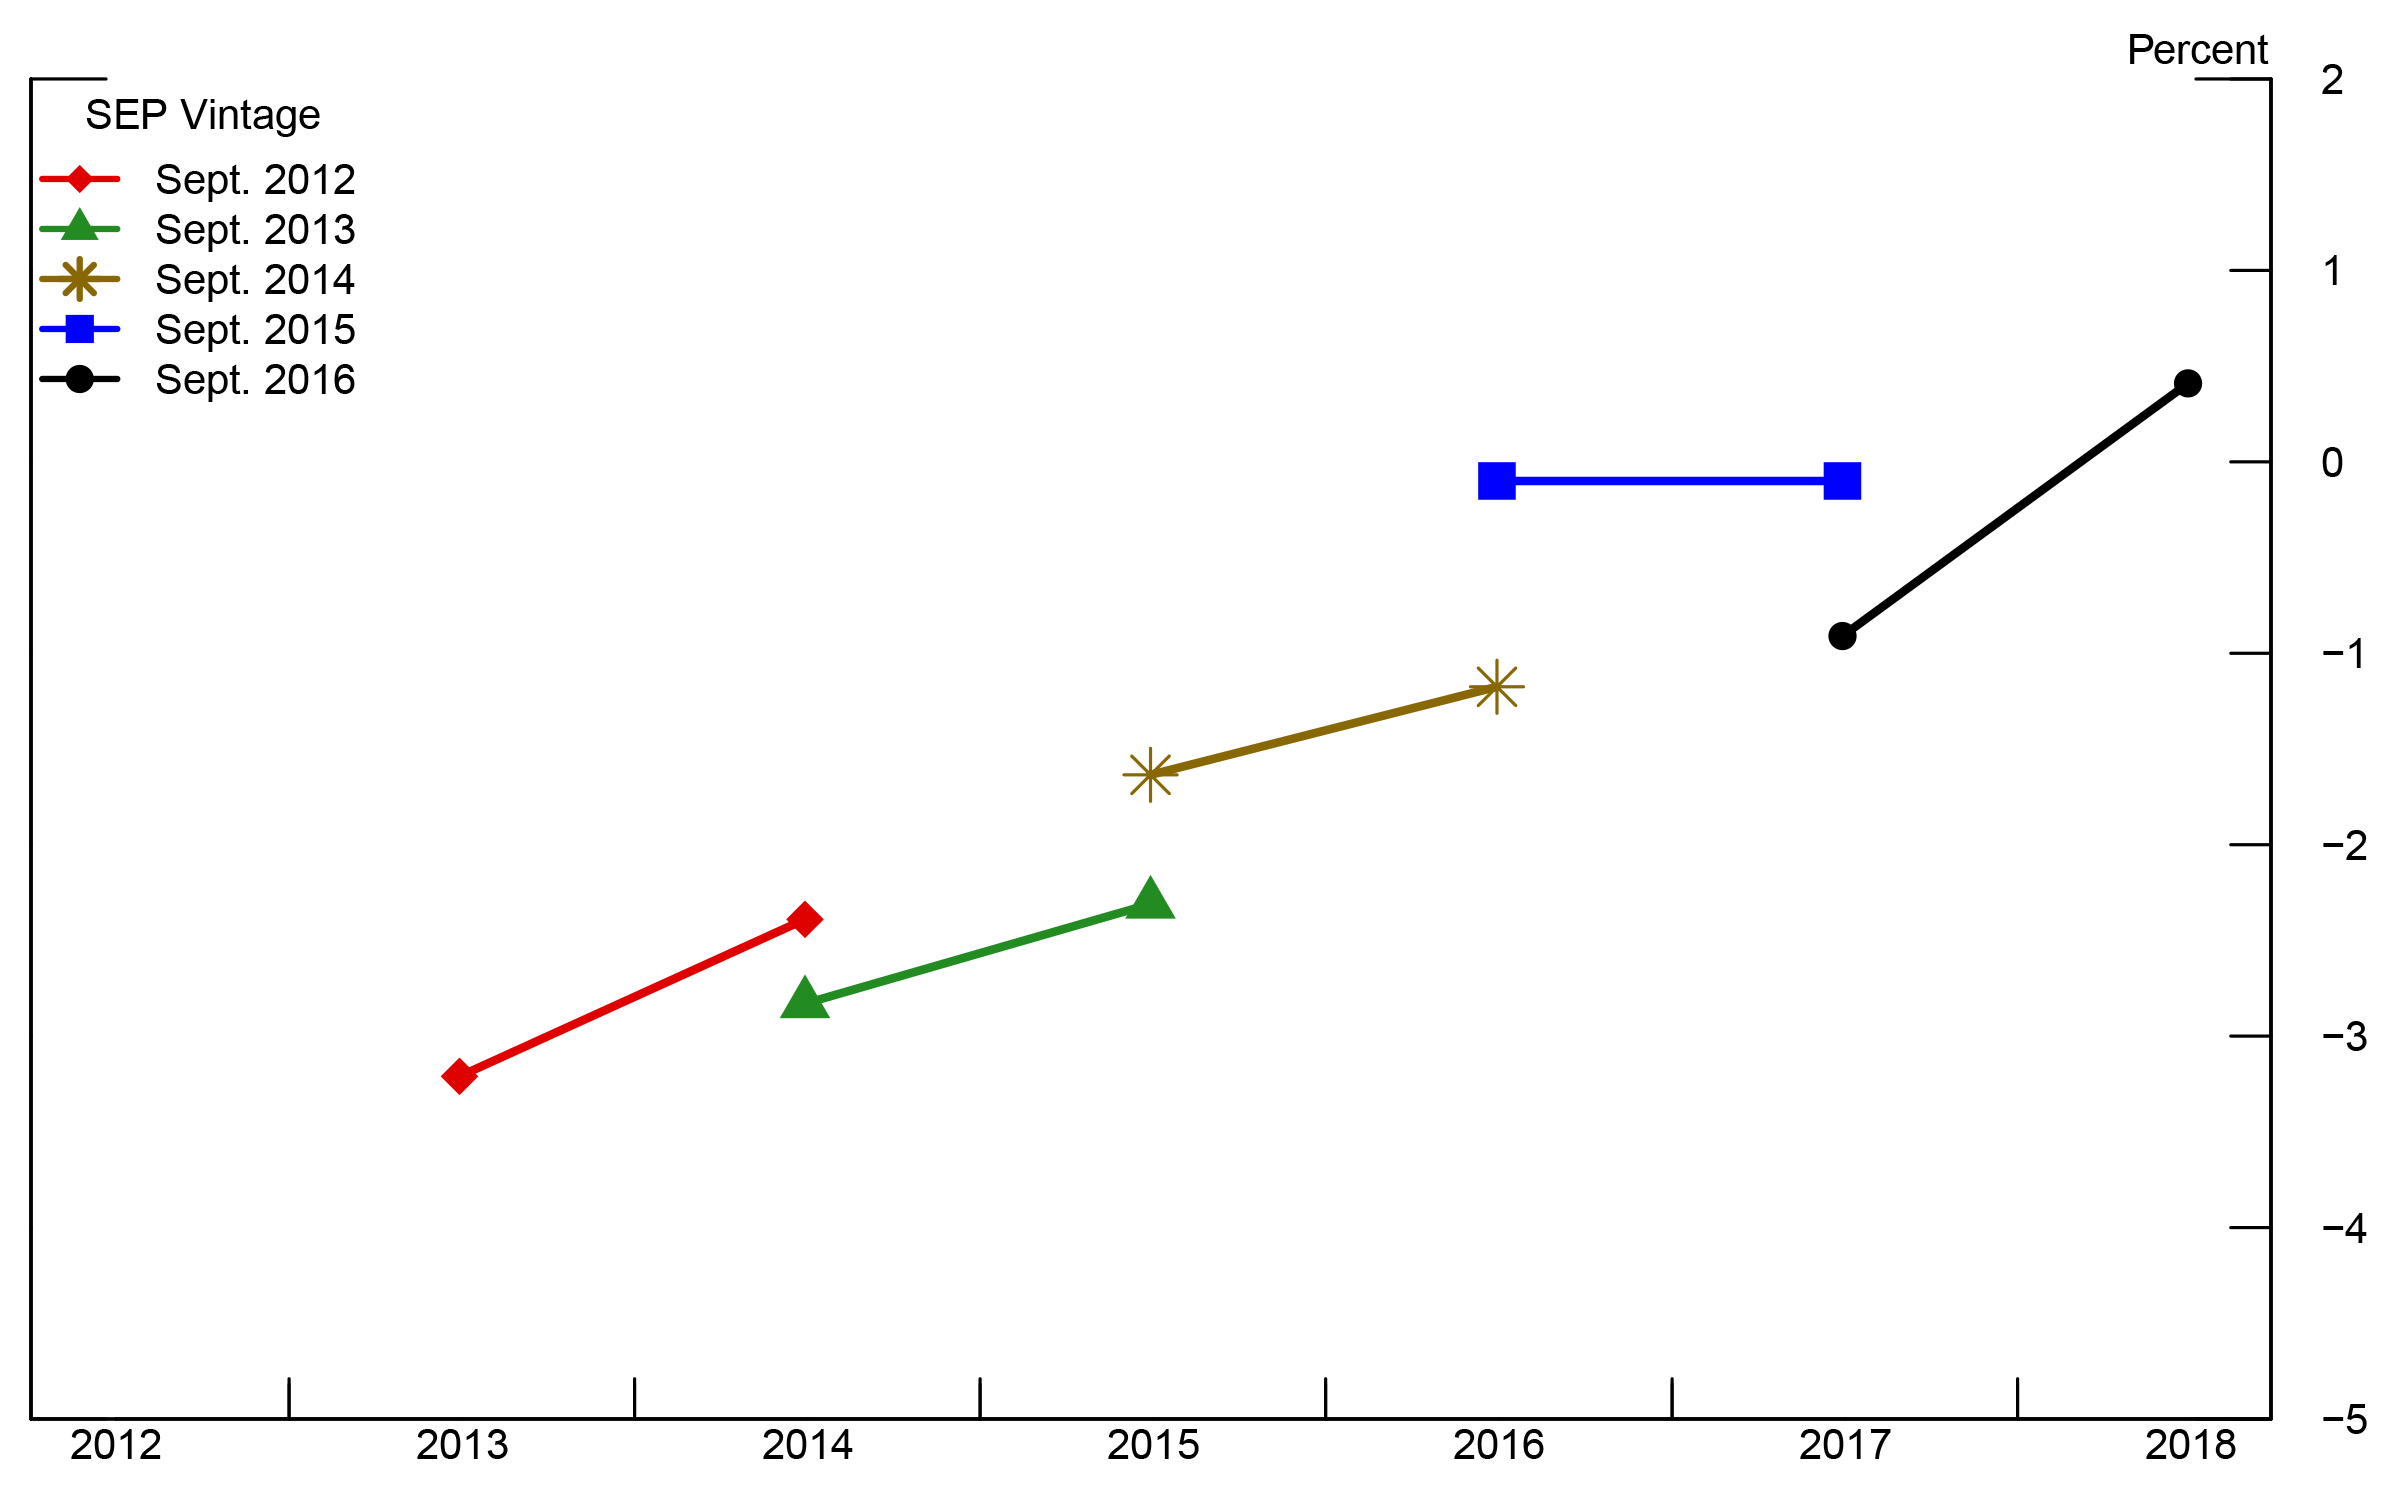 FRB: The Neutral Rate and the Summary of Economic Projections